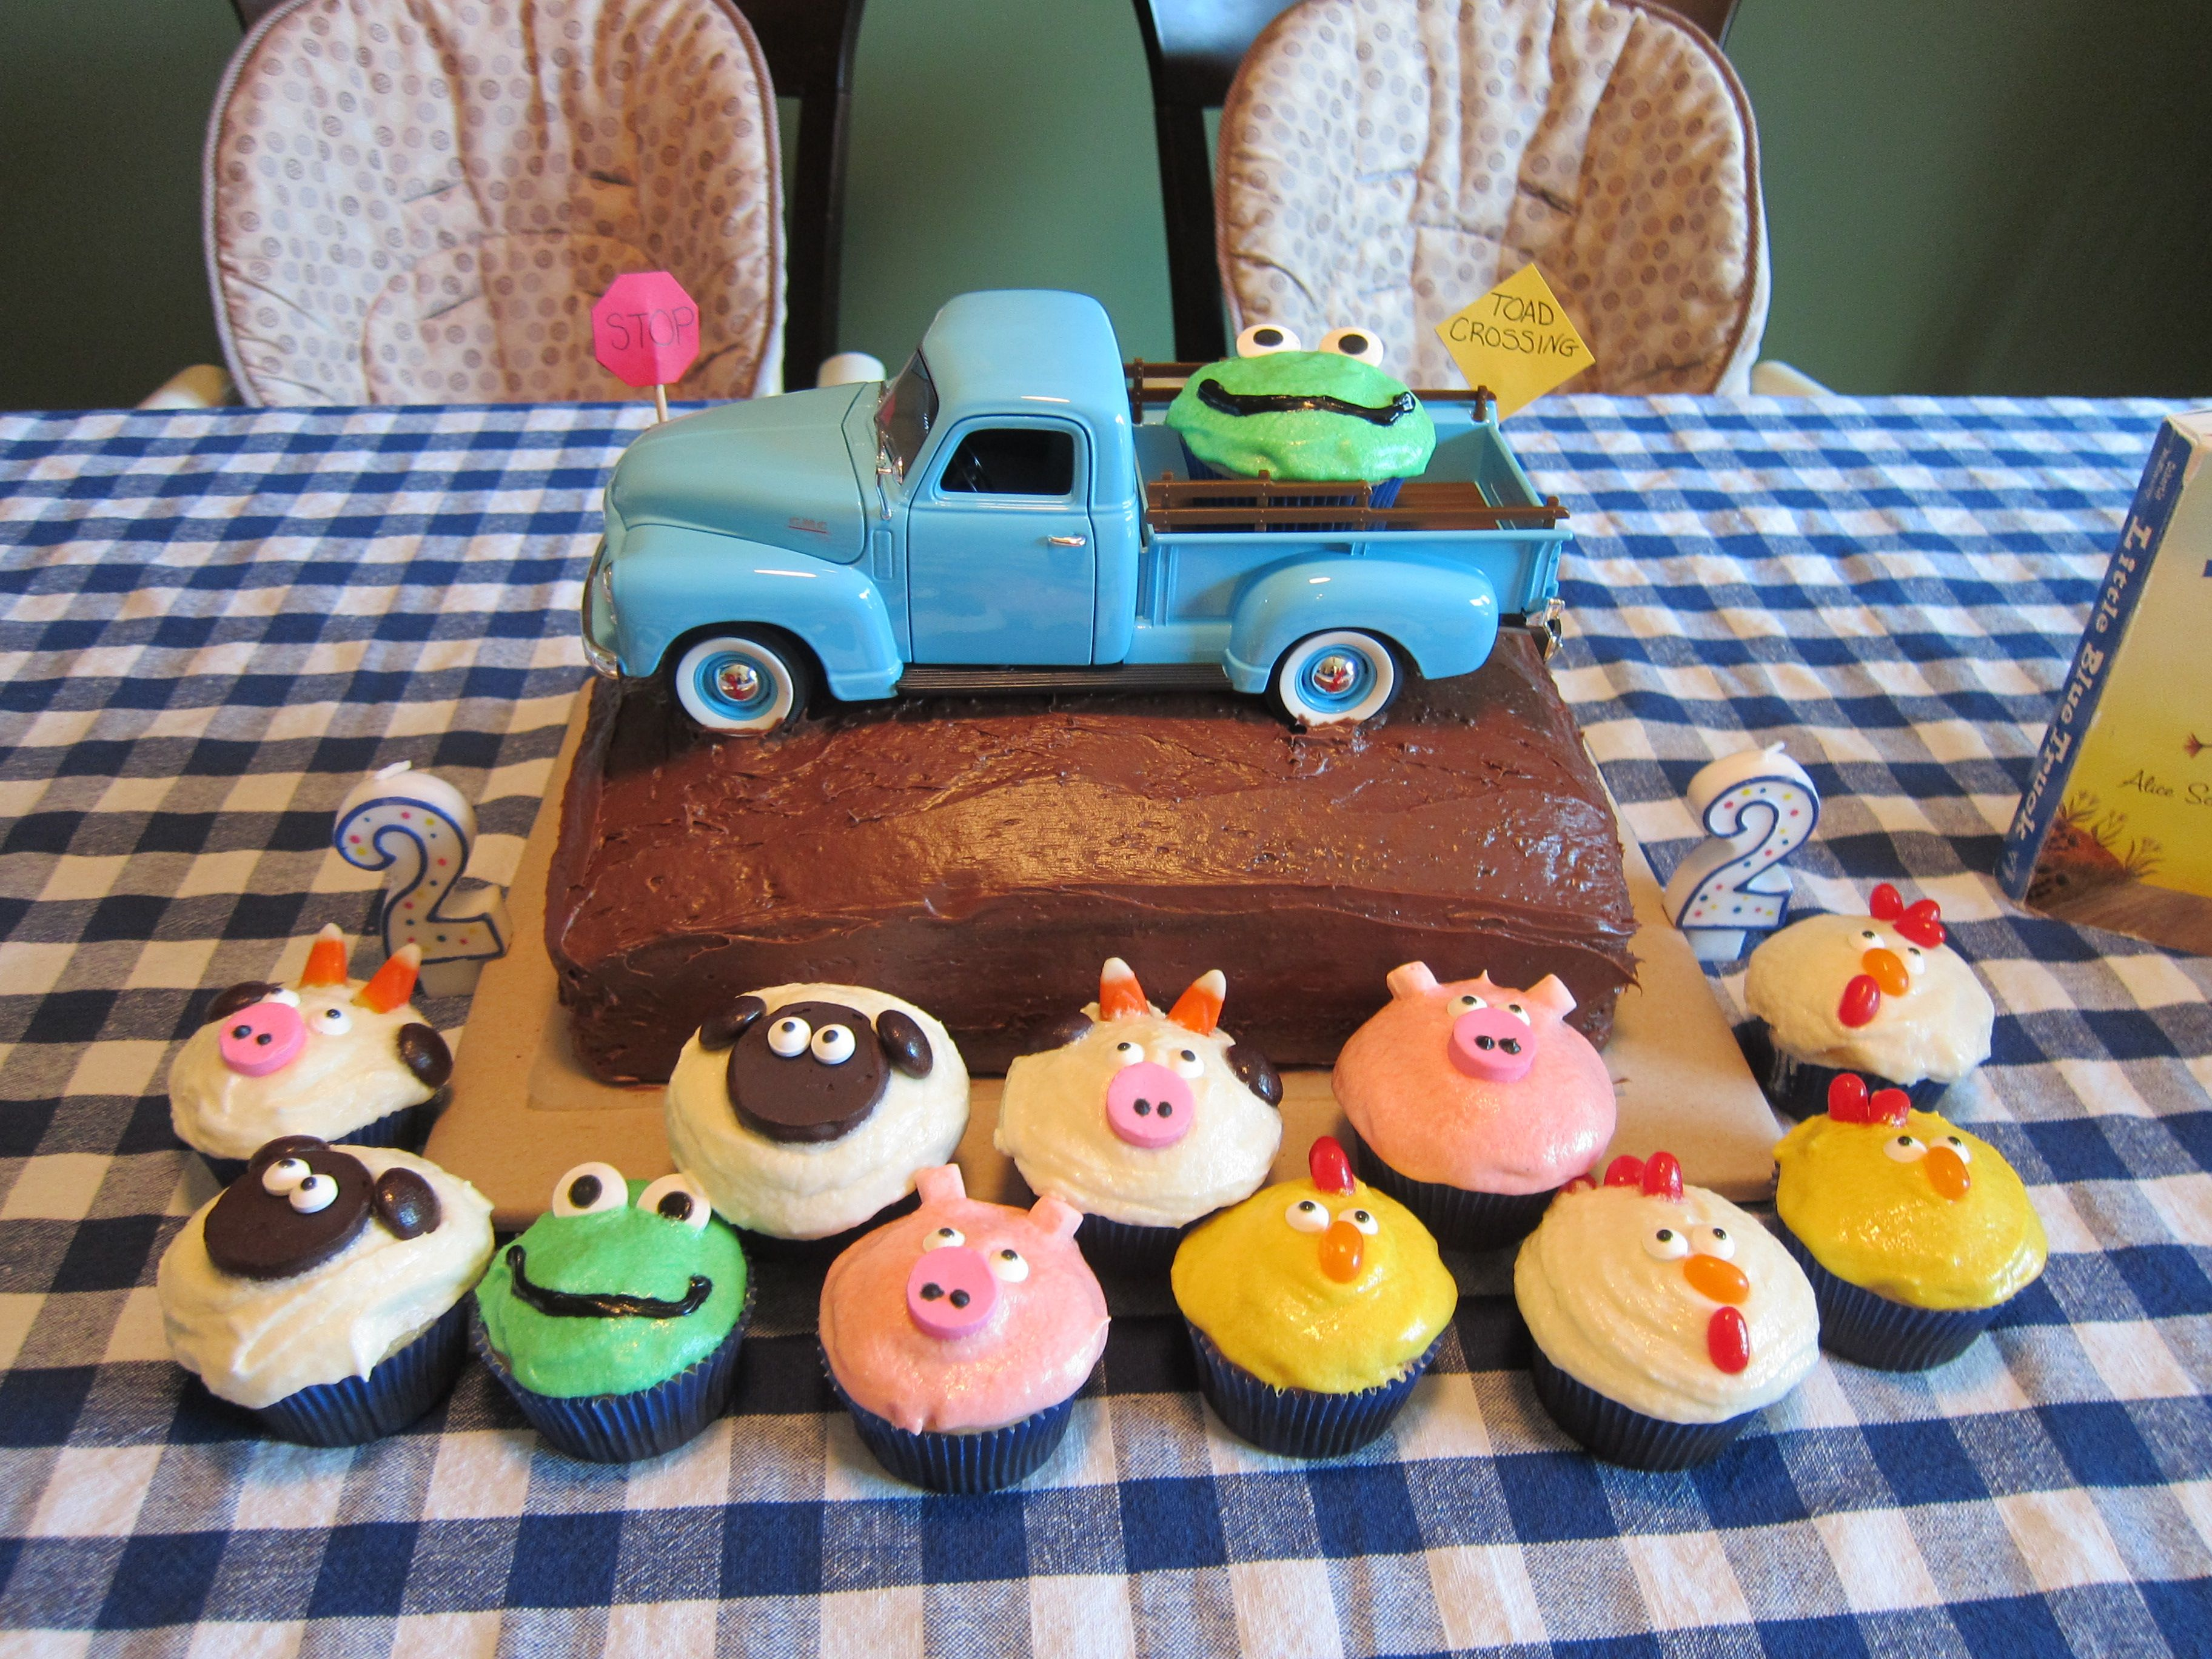 The Little Blue Truck cake and cupcakes I made for my twins 2nd